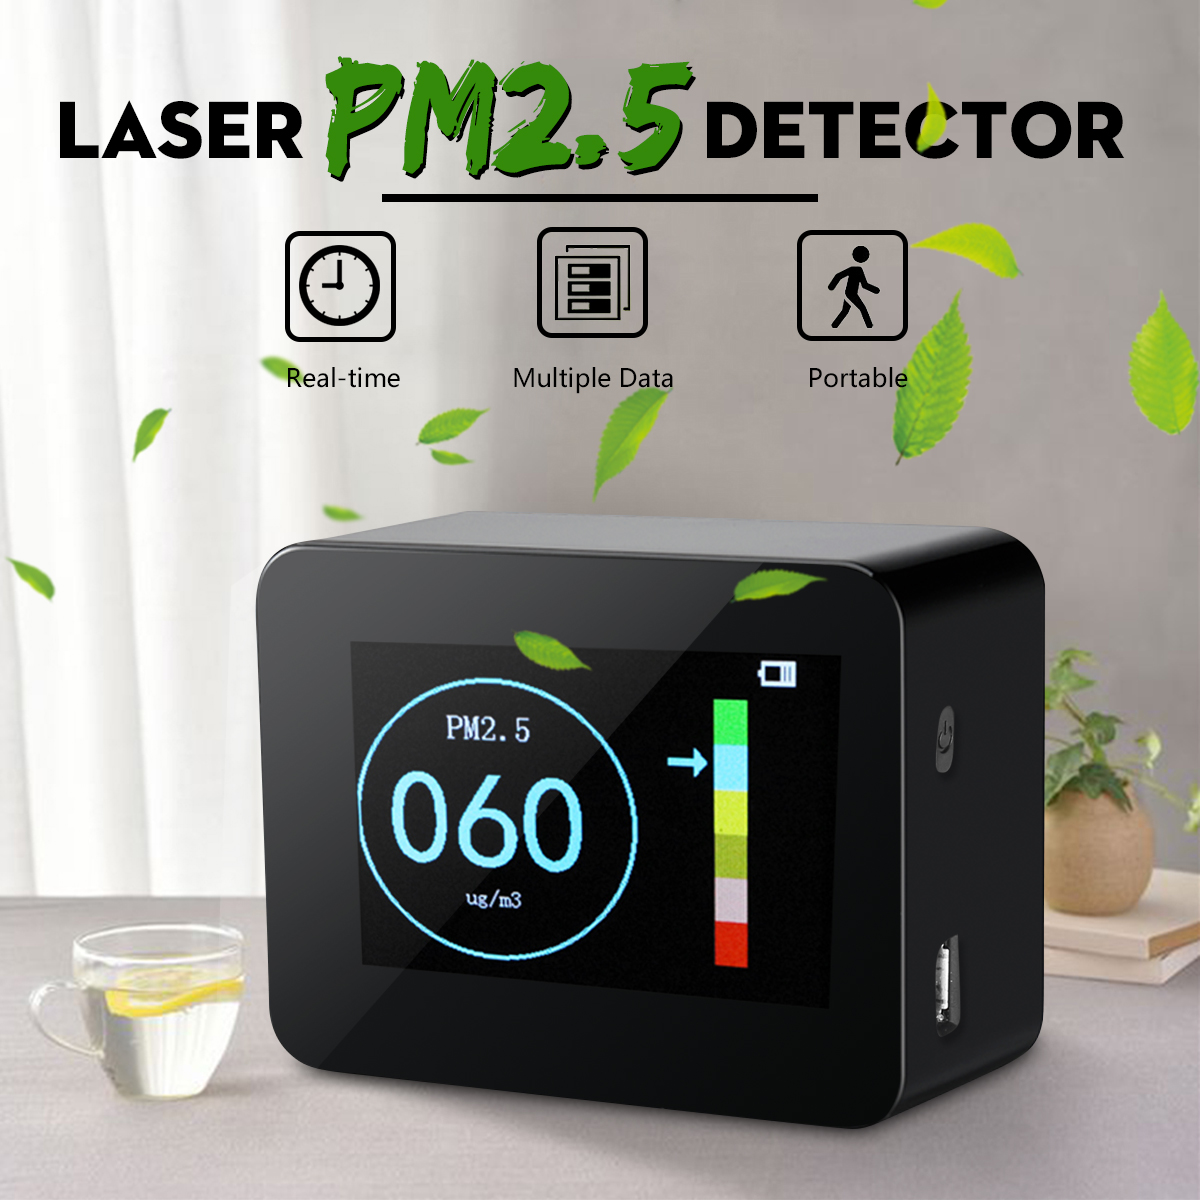 Portable Digital Dispaly PM2.5 Detector Laser Sensor Accurate Home Air Quality Monitor Tester li-ion Battery Diagnostic ToolsPortable Digital Dispaly PM2.5 Detector Laser Sensor Accurate Home Air Quality Monitor Tester li-ion Battery Diagnostic Tools